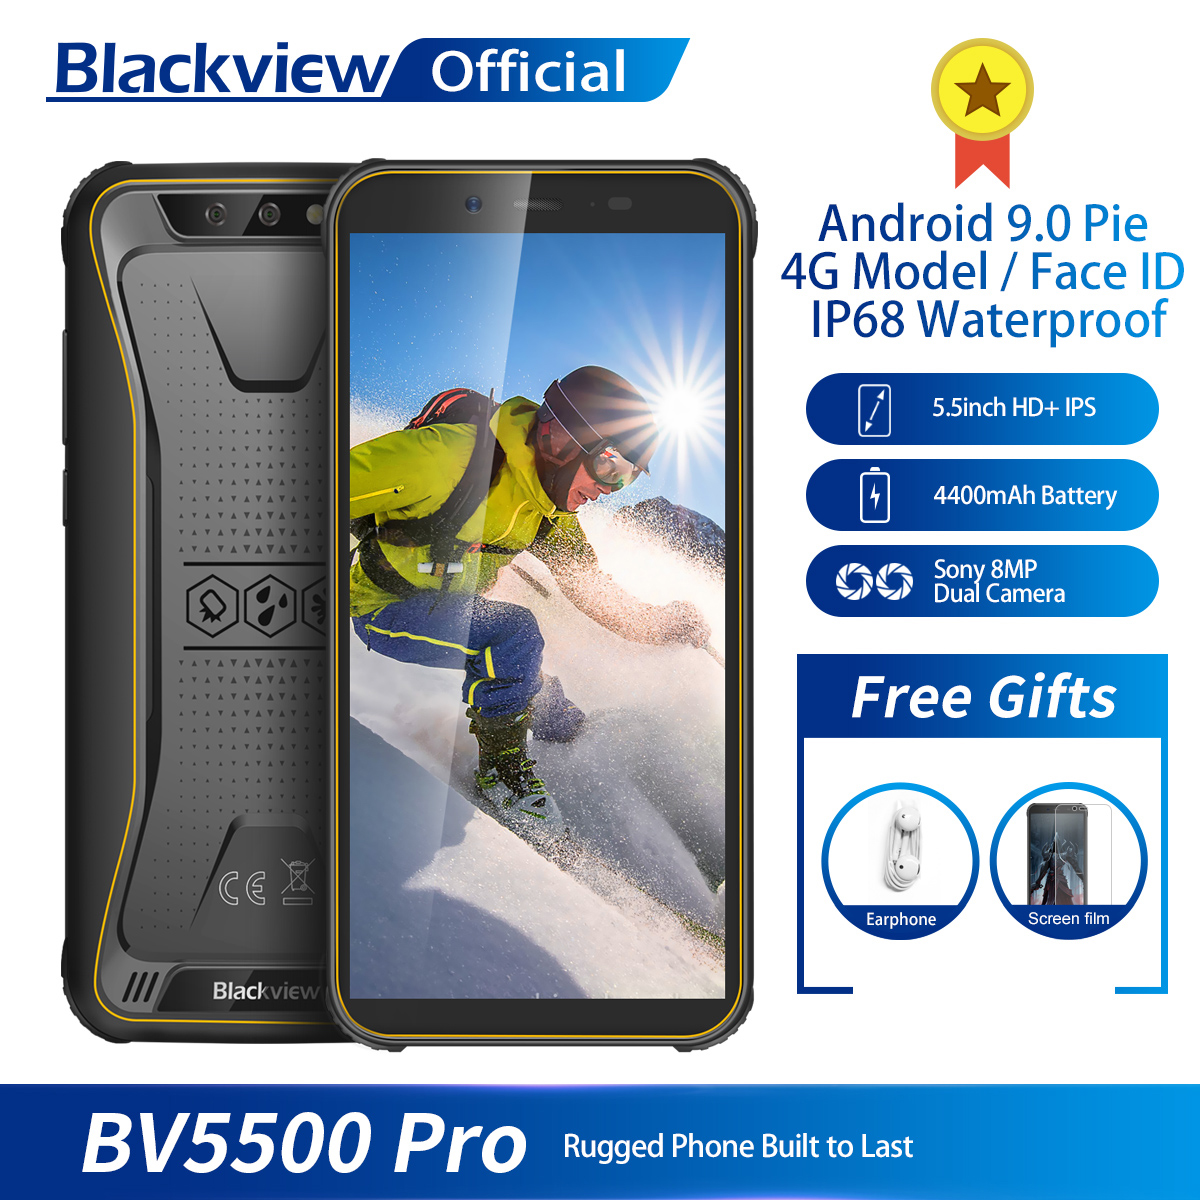 "Blackview BV5500 Pro IP68 Waterproof 4G Mobile Phone 3GB+16GB 5.5"" Screen 4400mAh Android 9.0 Pie Dual SIM Rugged Smartphone"